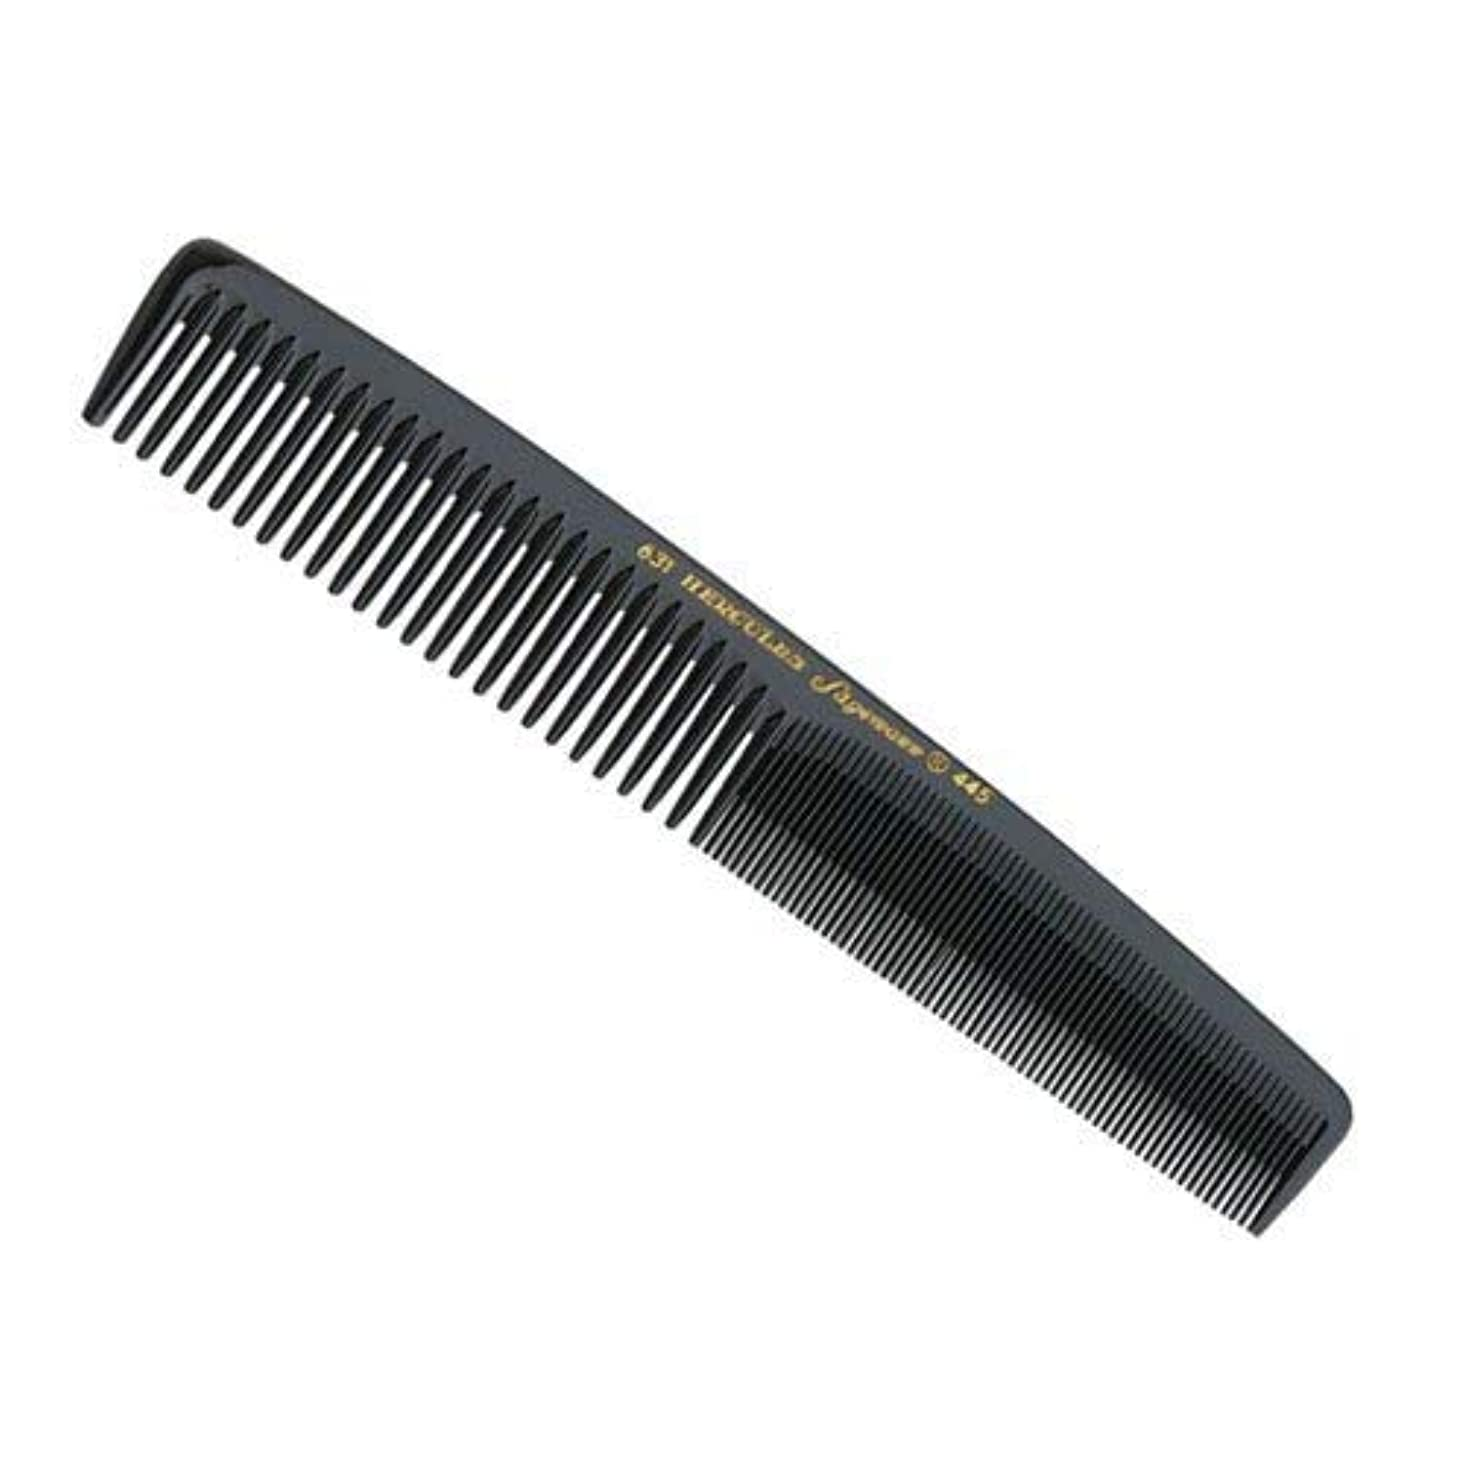 メイエラ懐疑論テクトニックHercules Sagemann Medium Waver Ladies Hair Comb, Length-17.8 cm [並行輸入品]